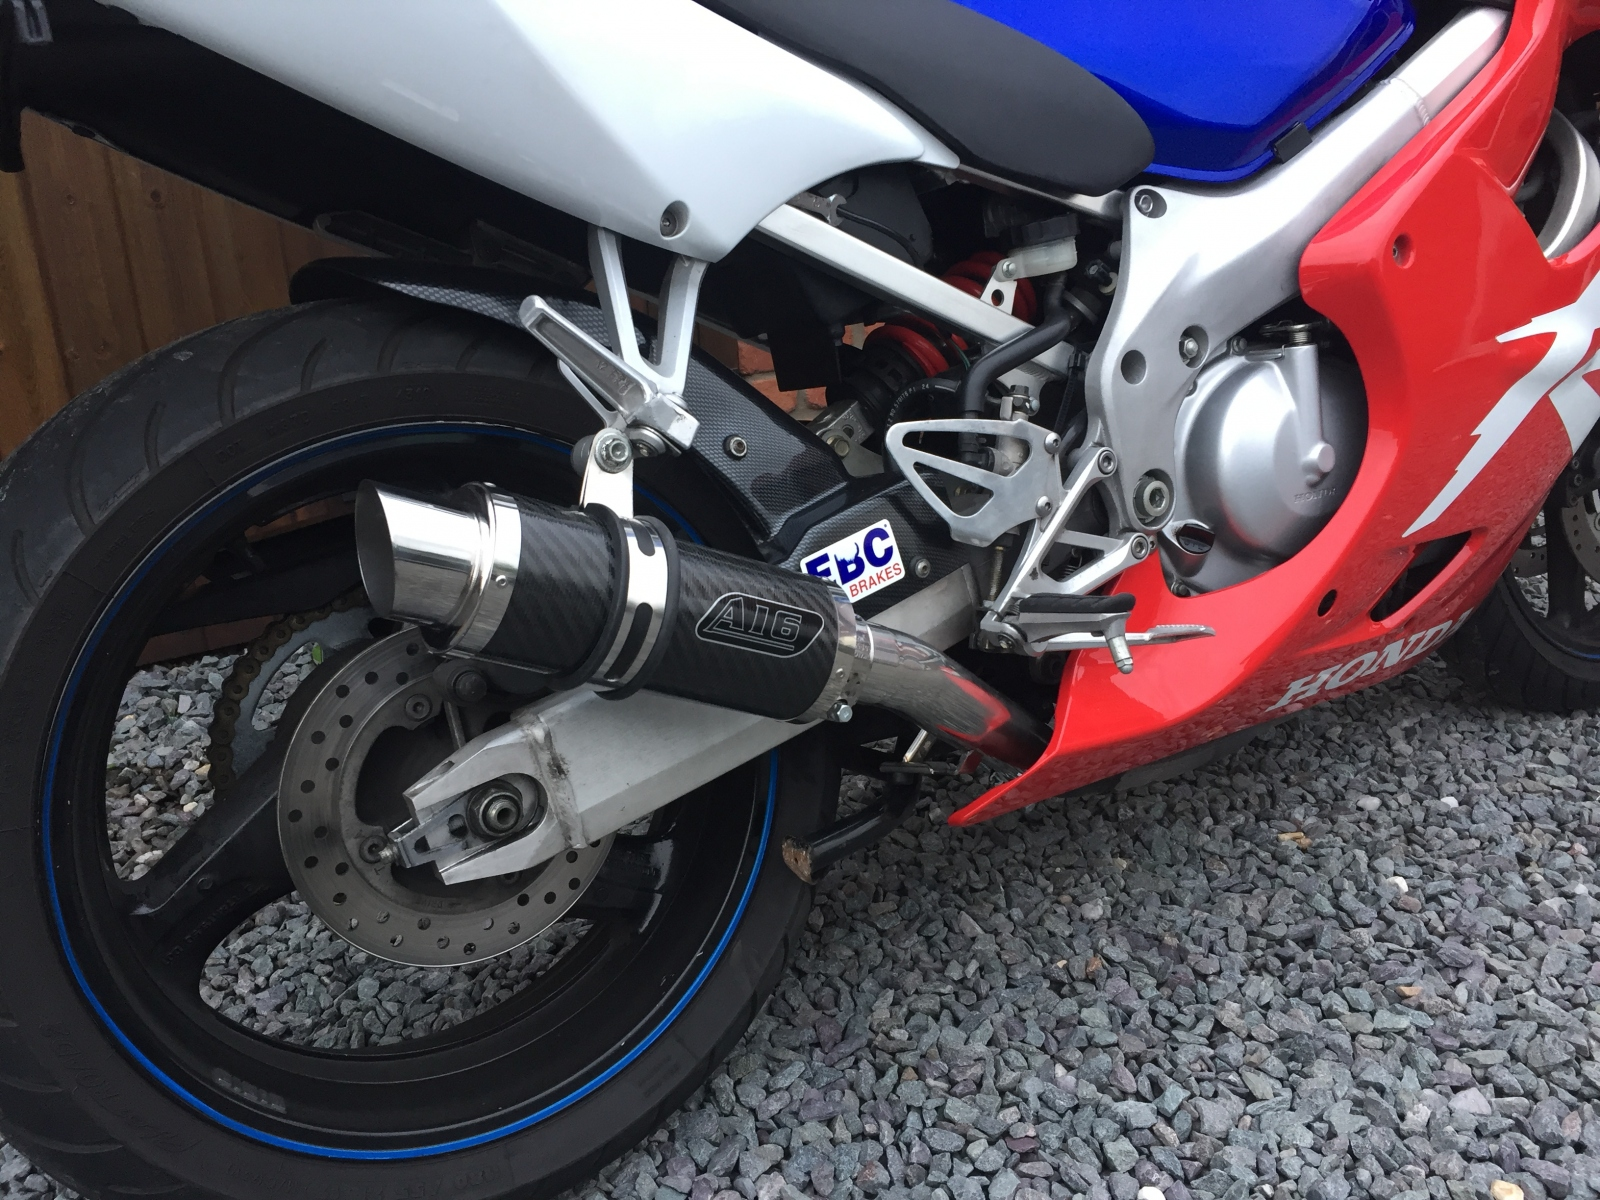 """Honda CBR600 F4 FX-FY 1999-2000<p>A16 Moto GP Carbon Exhaust with Polished Slashcut Outlet</p><br/><br/><a href=""""https://a16roadnracesupplies.co.uk/product/a16-honda-exhausts/"""">Buy now!</a>"""